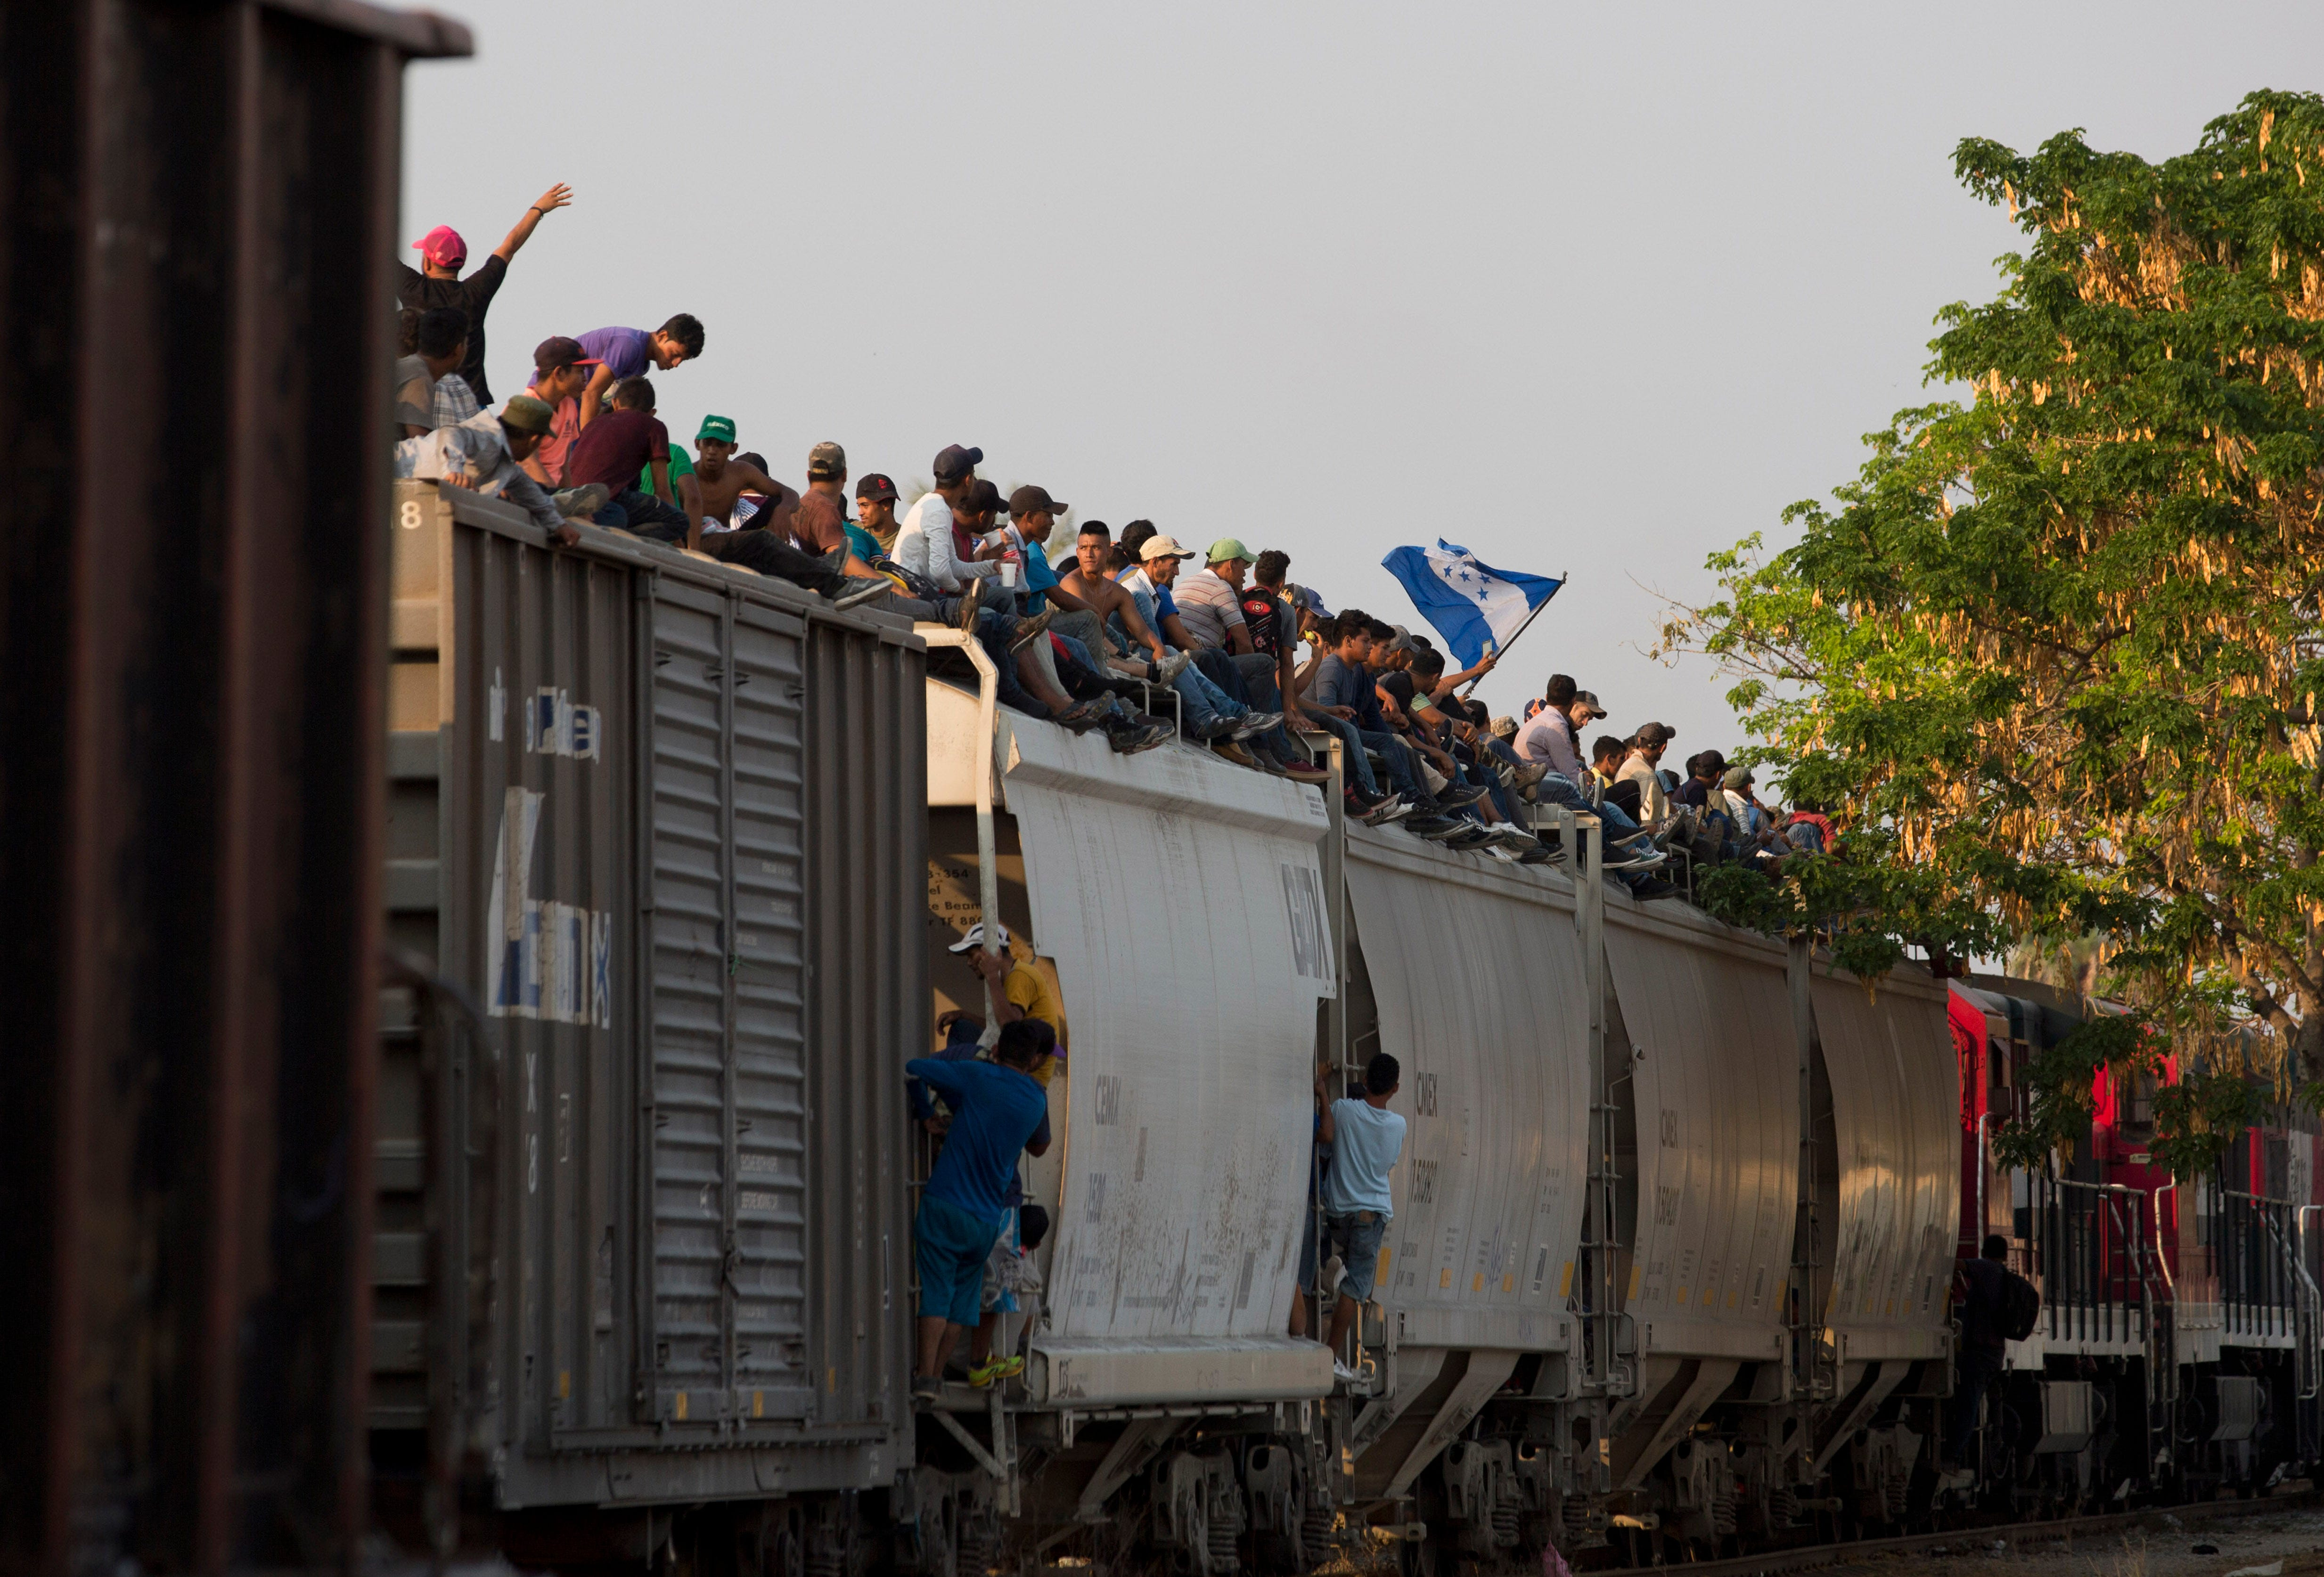 Migrant Caravan From Central America Riding Beast Train In Mexico